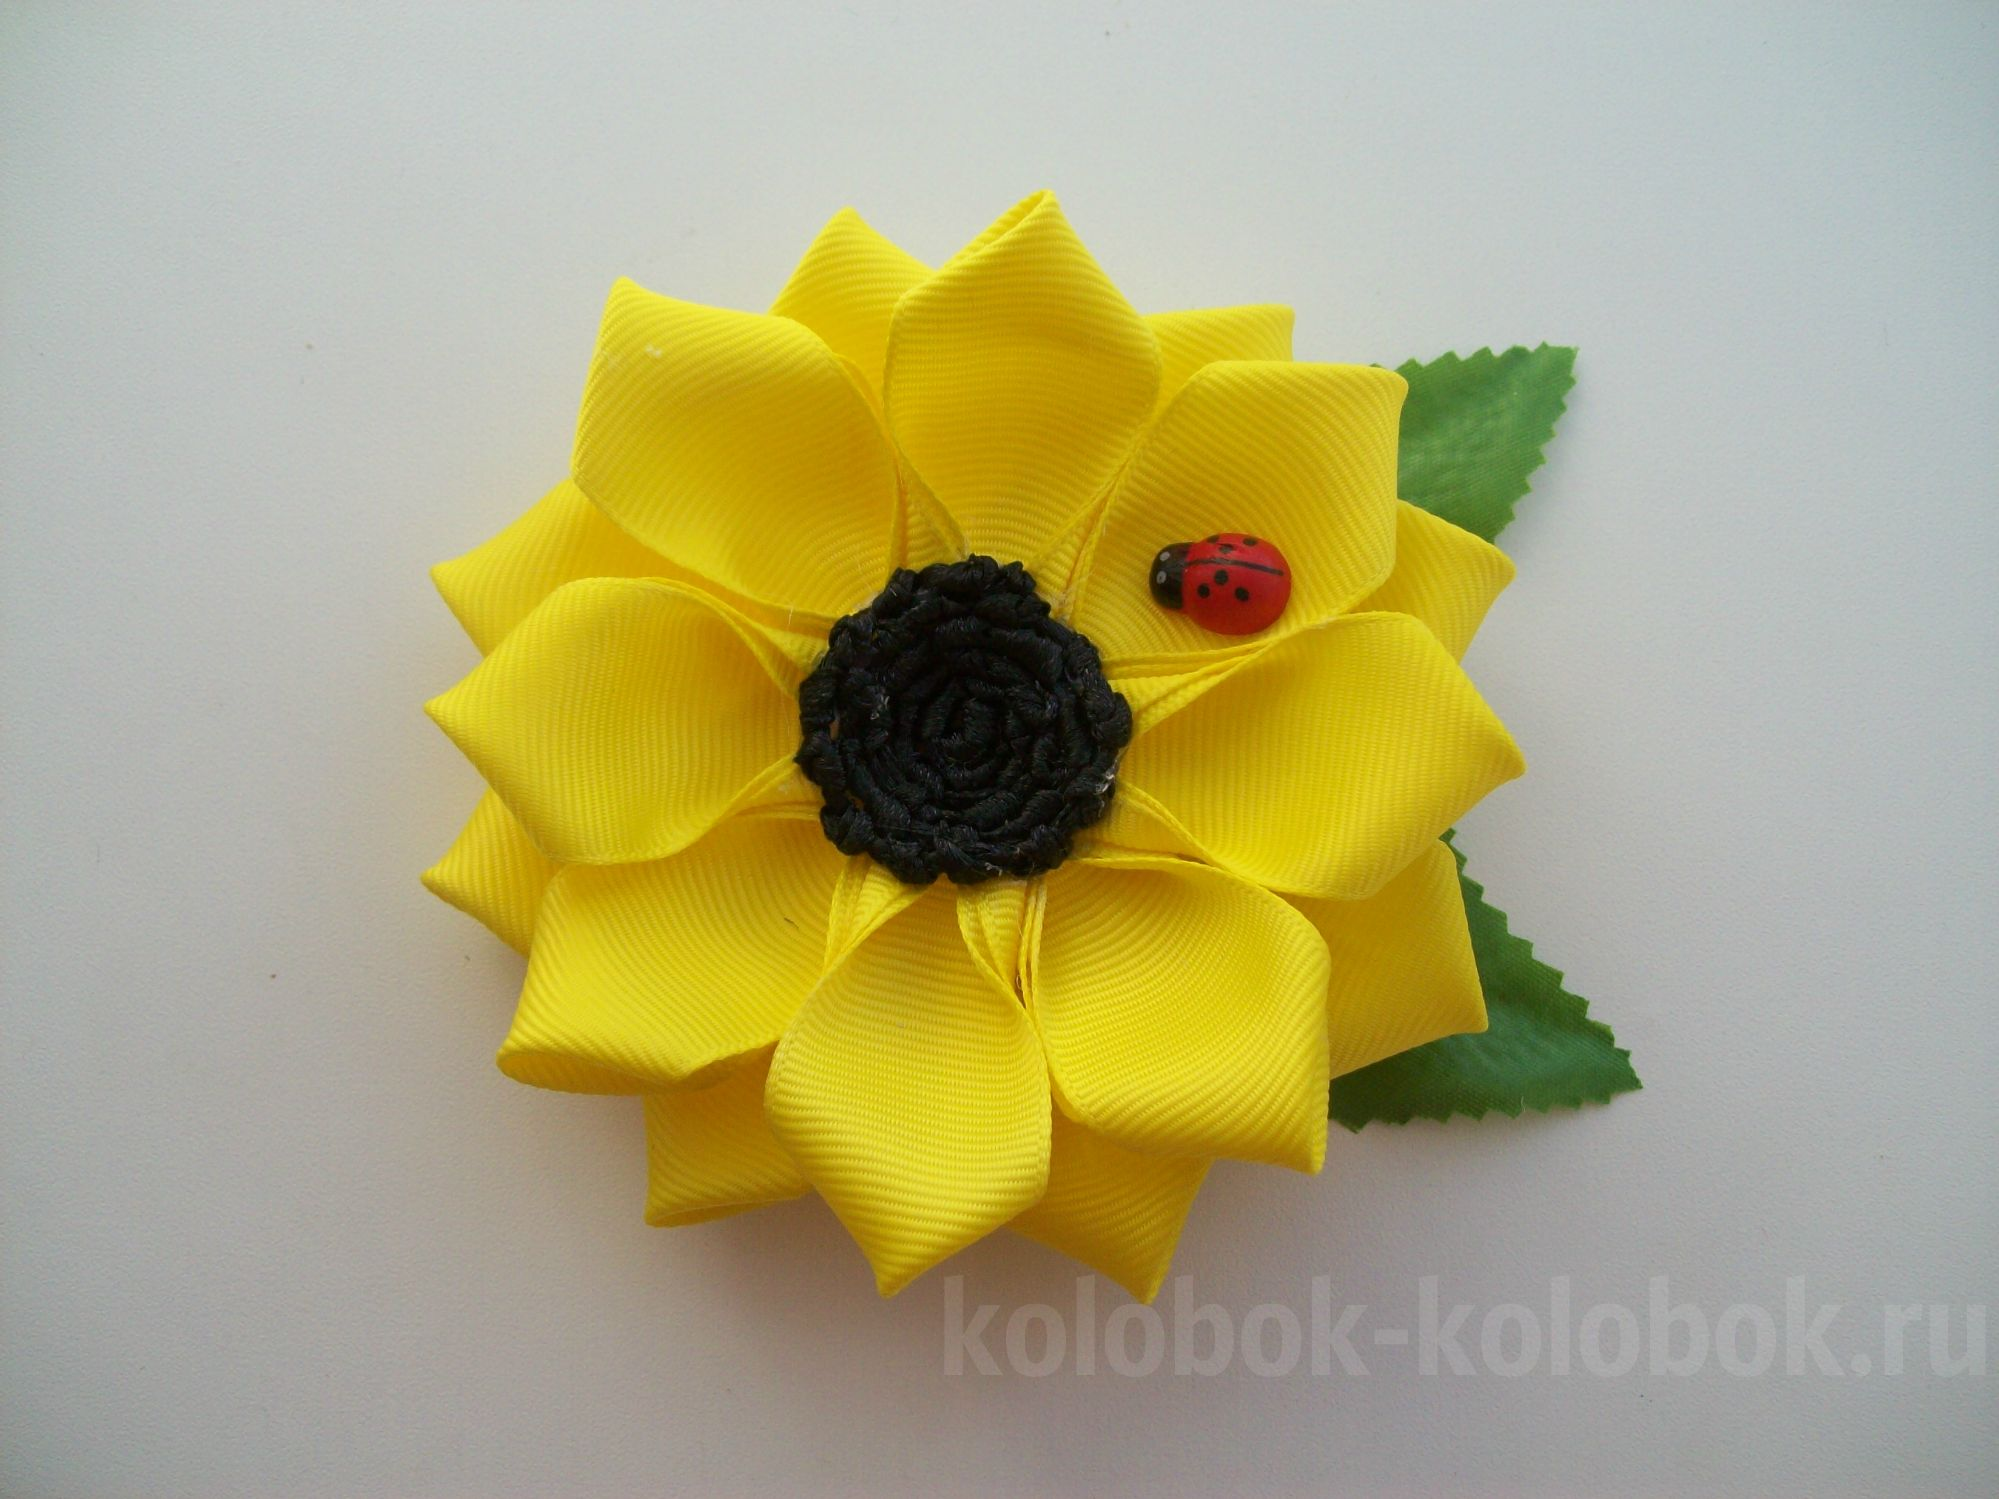 Topiary from tapes: how to make a sunflower